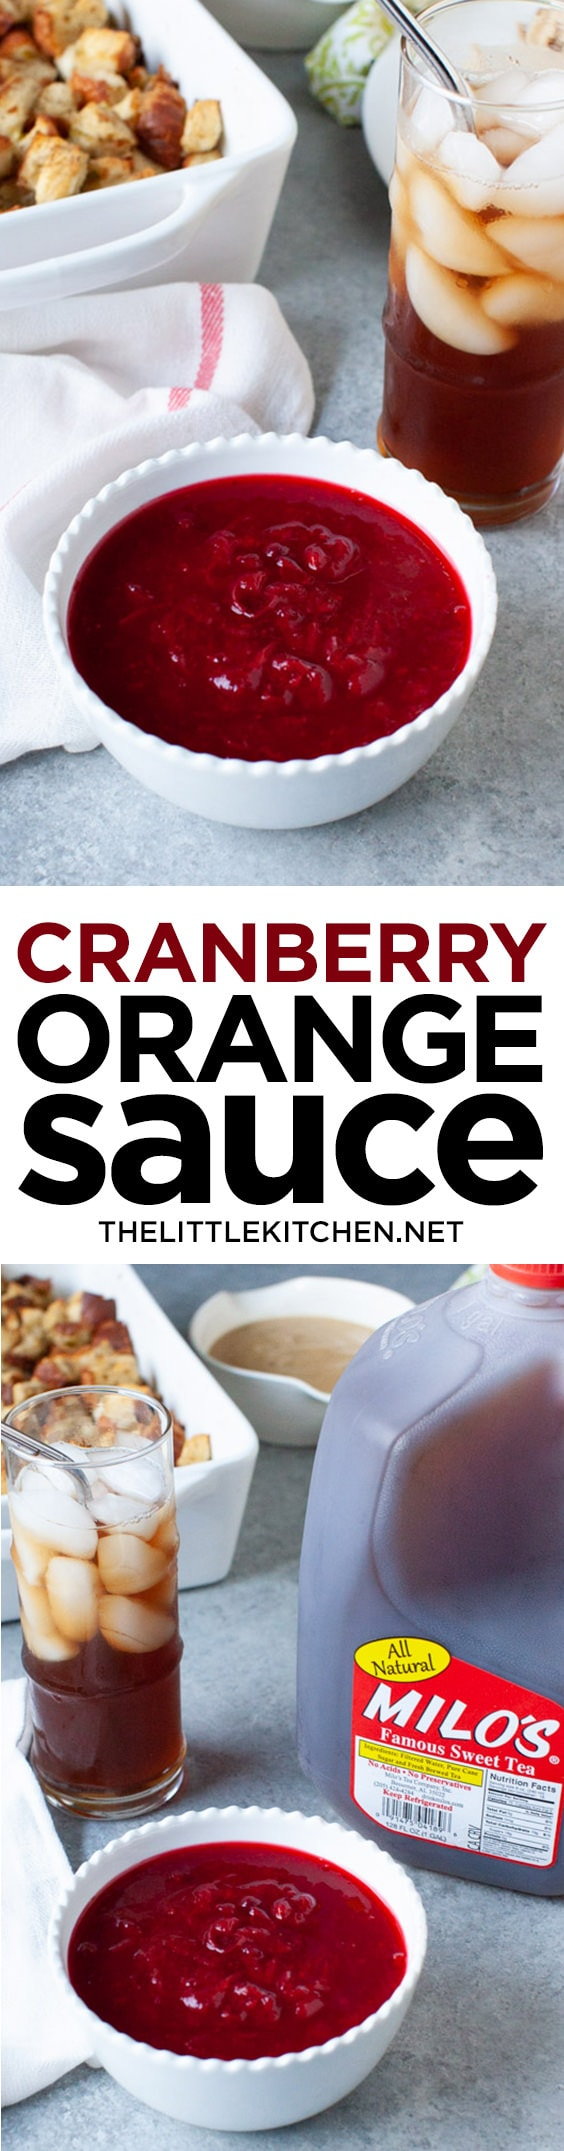 Cranberry Orange Sauce from thelittlekitchen.net